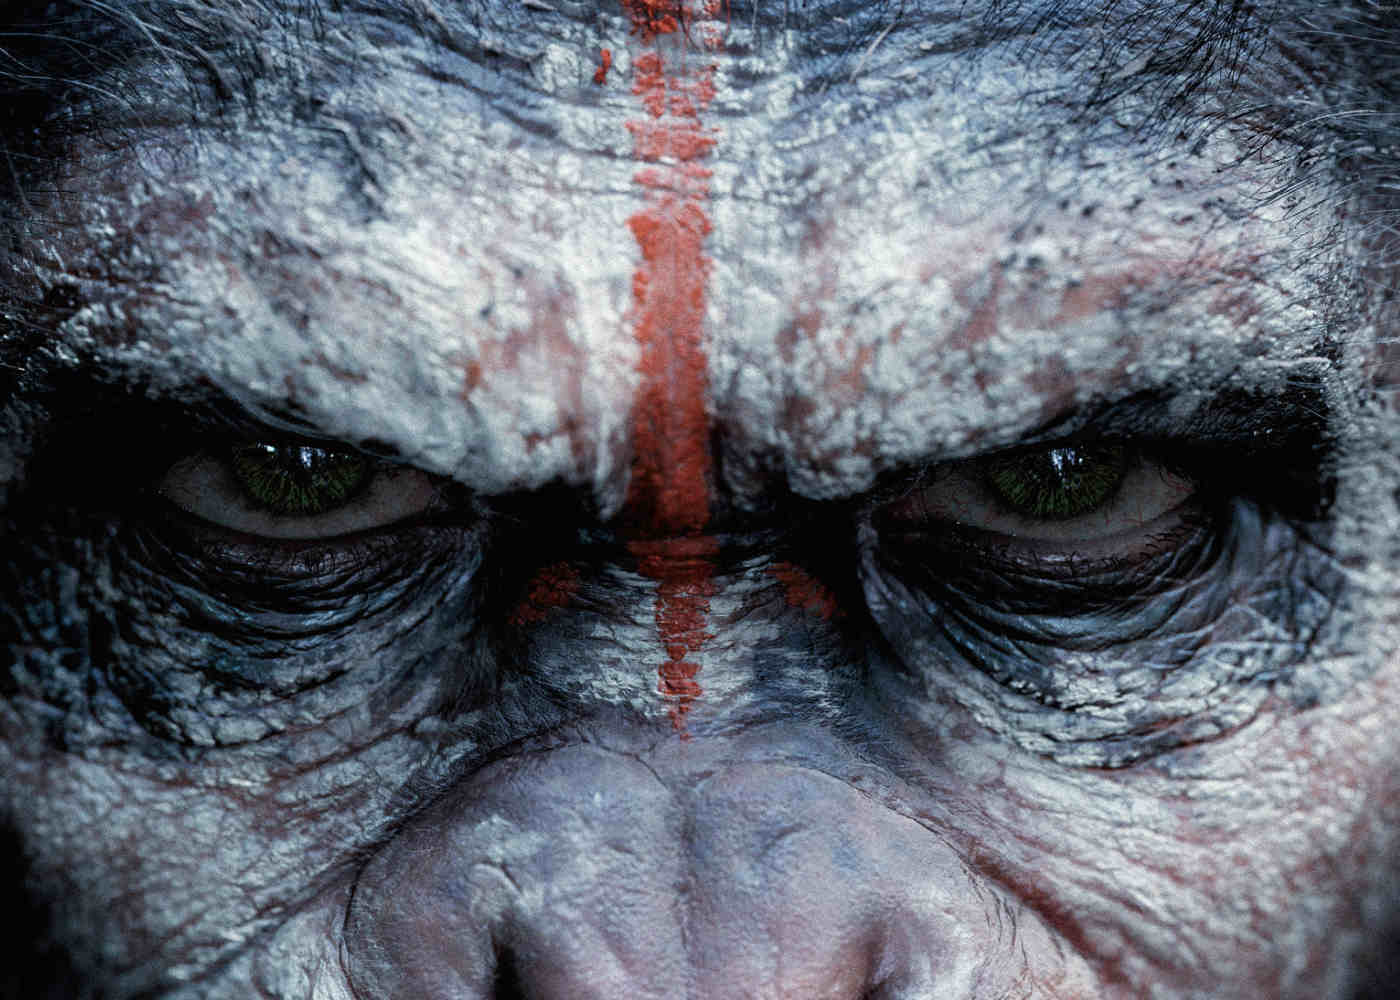 War for the Planet of the Apes: A VFX Inside Look